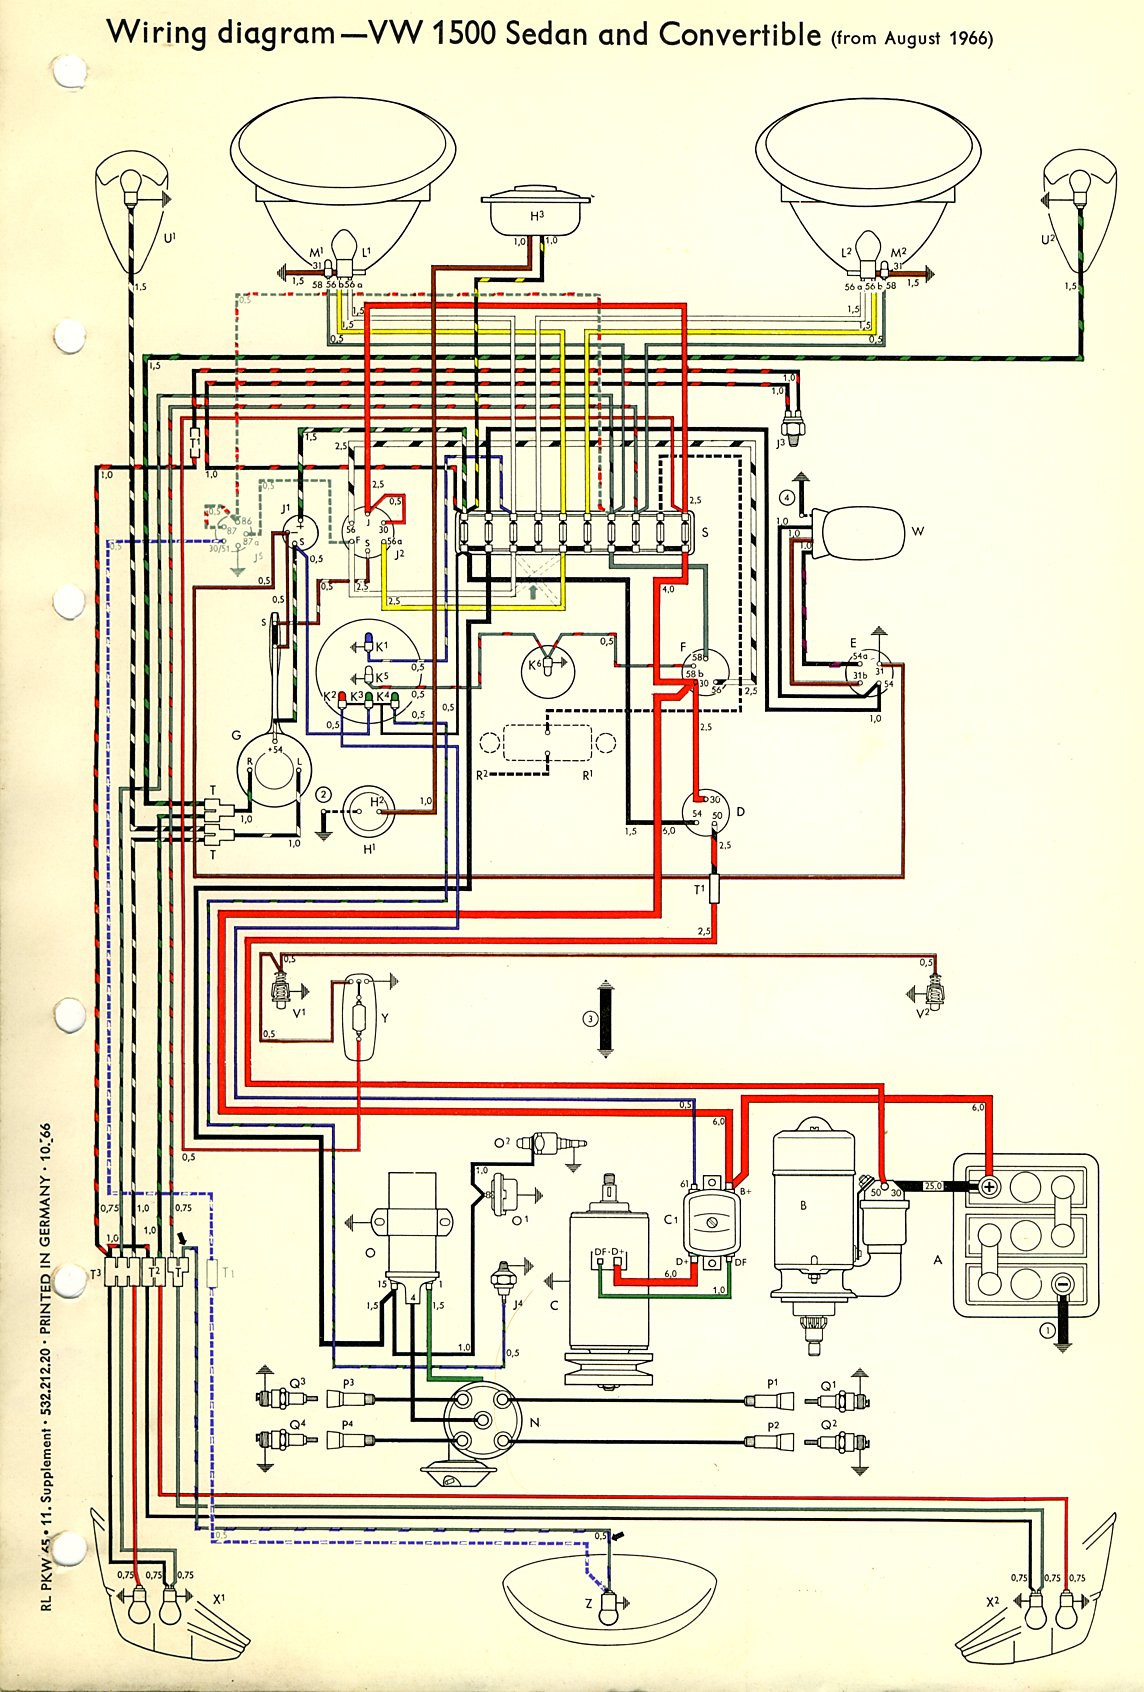 2000 Beetle Wiring Diagram Diagram] 2000 Beetle Wiring Diagram Full Version Hd Quality Wiring … Of 2000 Beetle Wiring Diagram